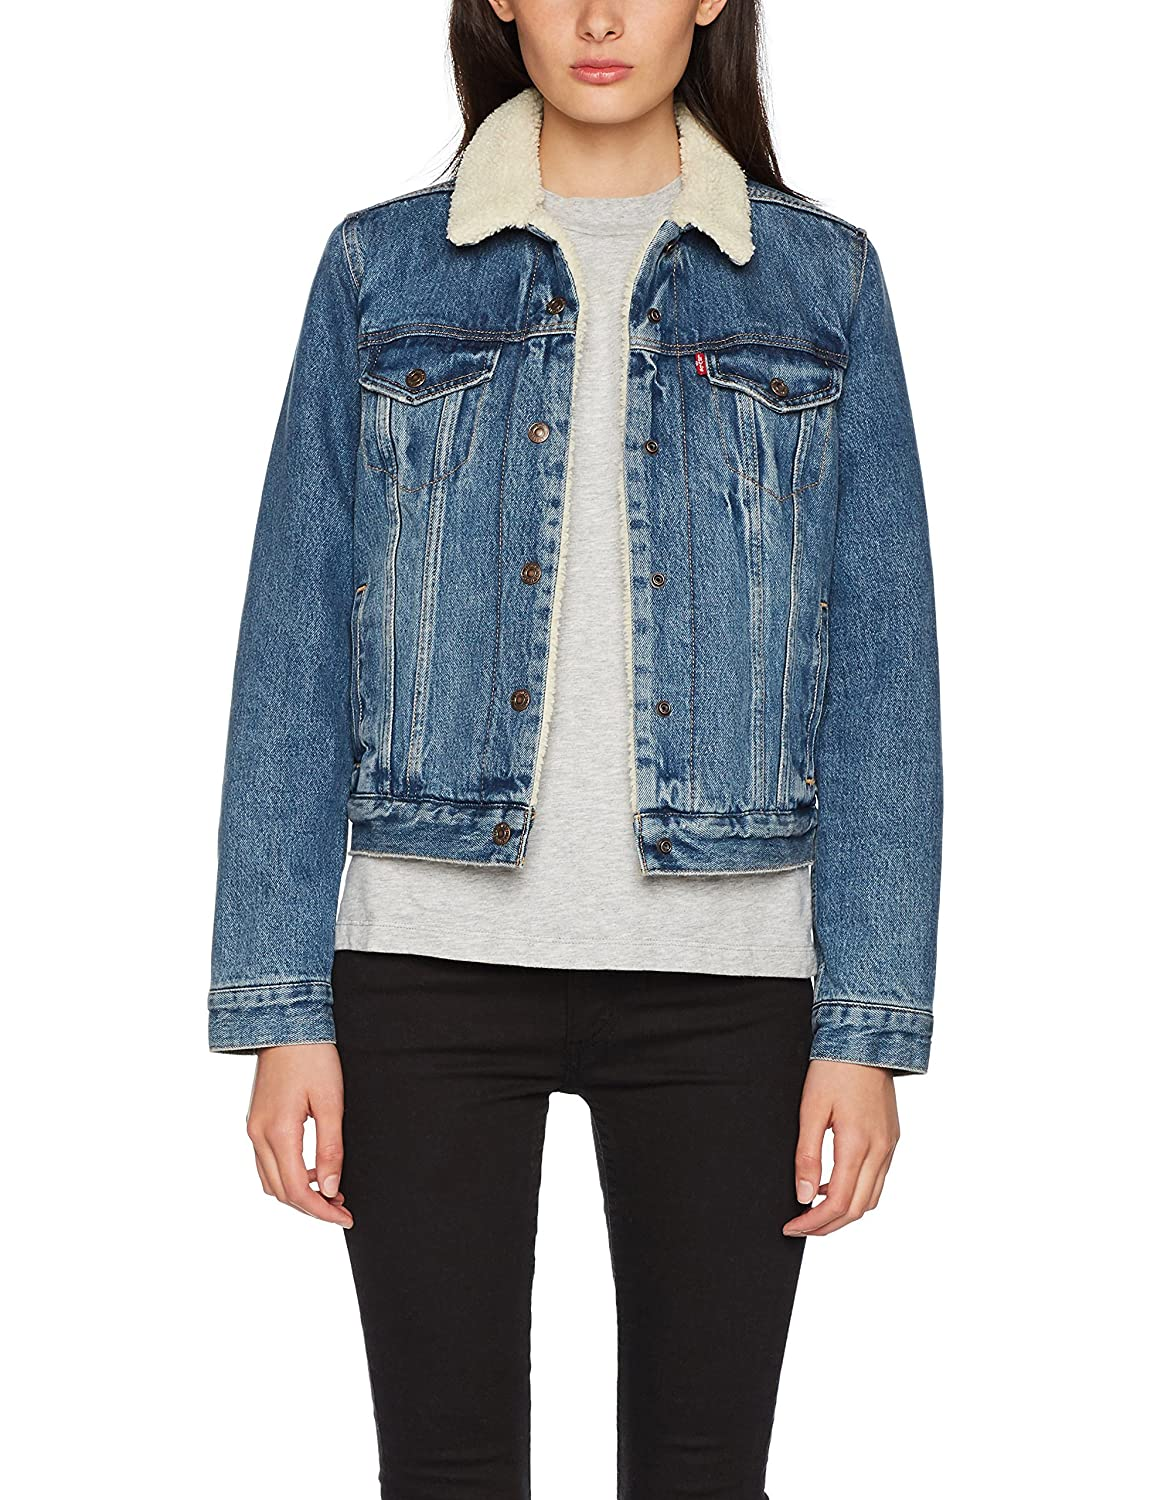 Levi's Women's Original Sherpa Trucker Denim Jacket Levis Levi' s 36136